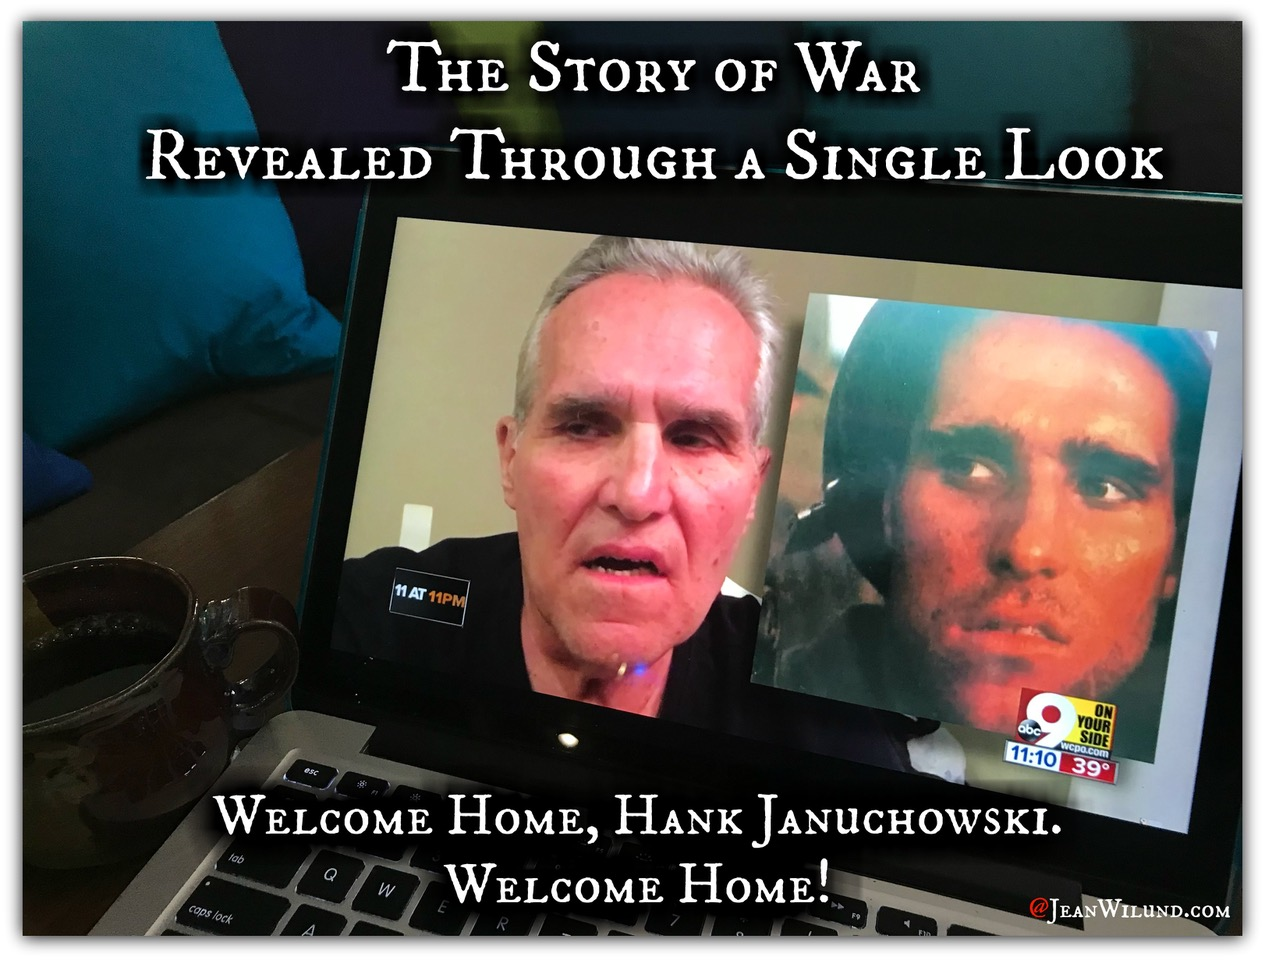 The Story of War Revealed Through a Single Look - Welcome Home, Hank Januchowski